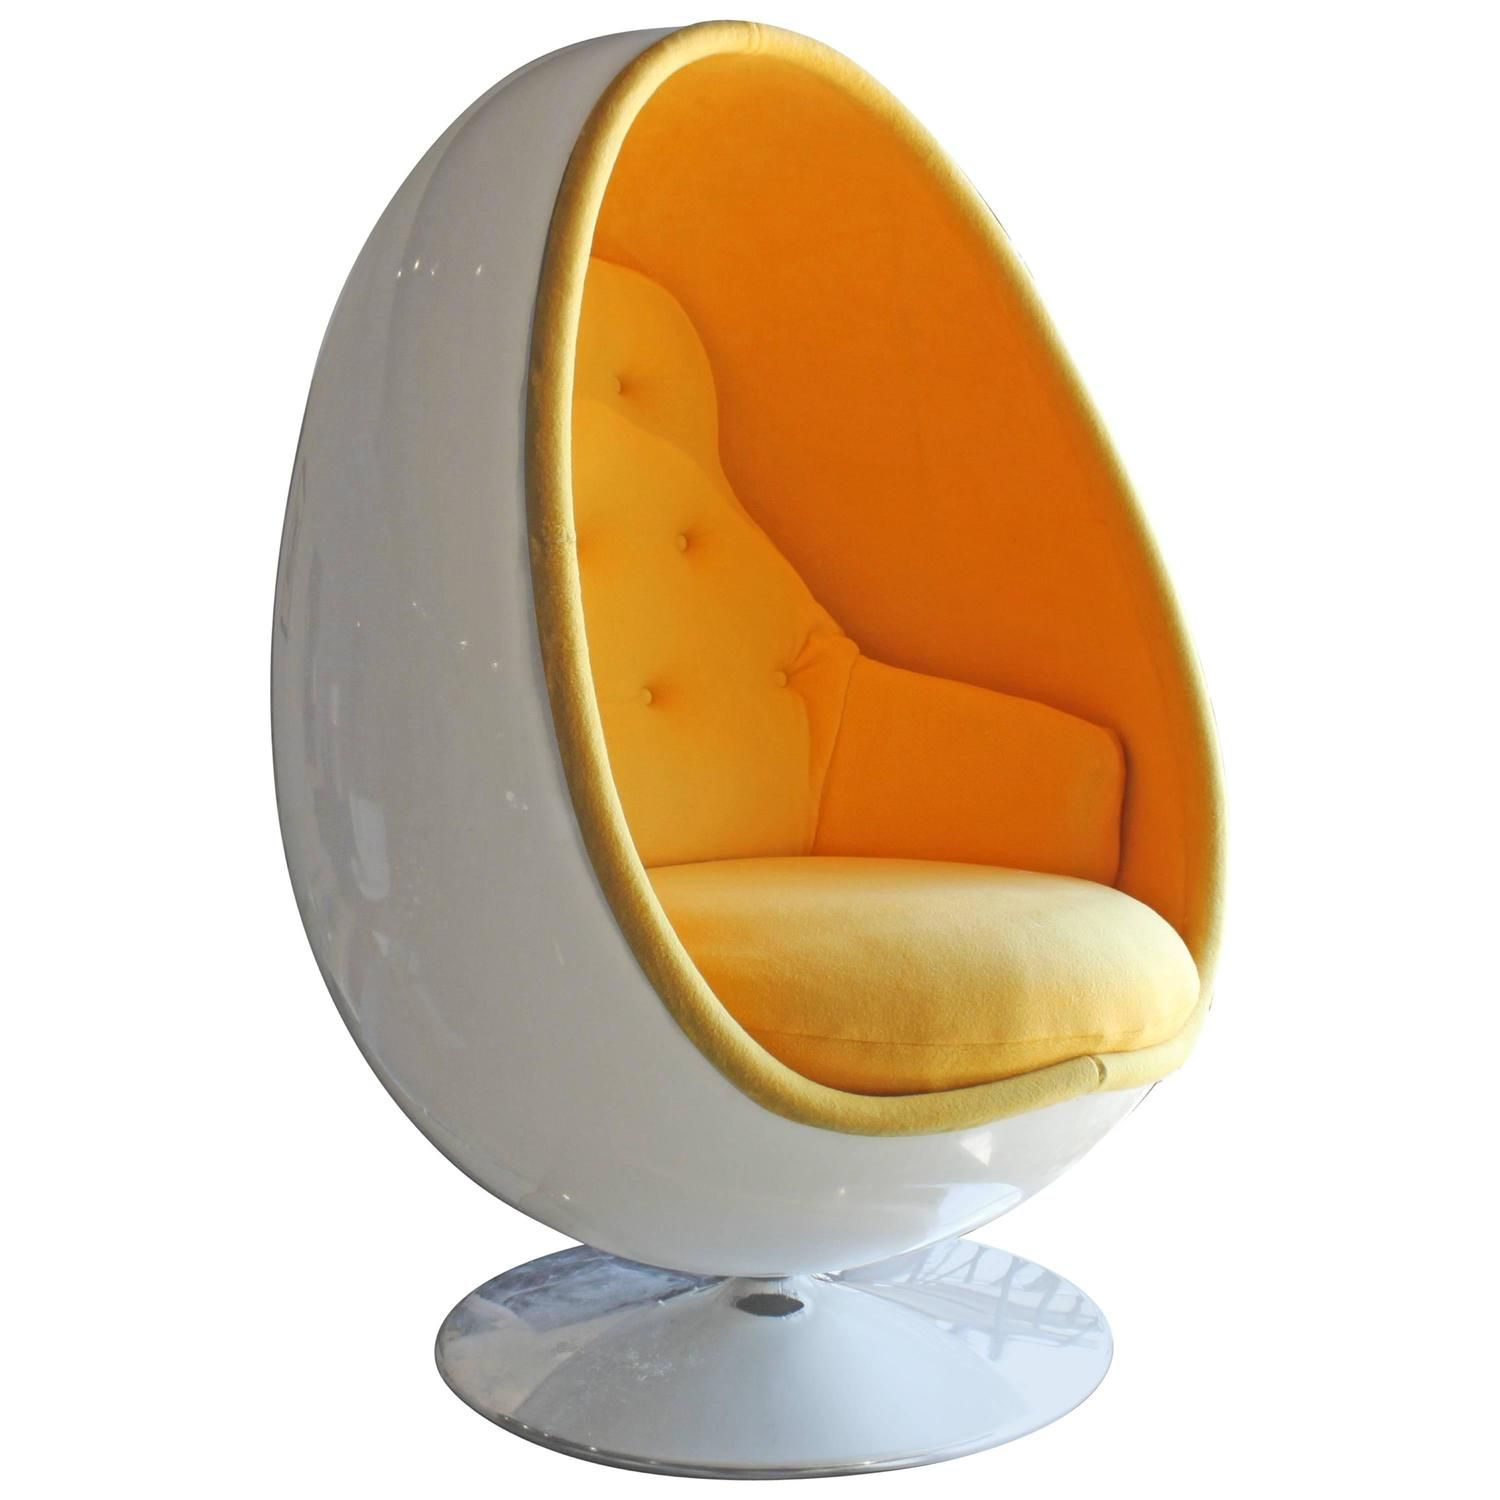 Egg Chairs For Sale Cheap Ovalia Egg Chair By Thor Larsen Merry Wives Inspiration Egg